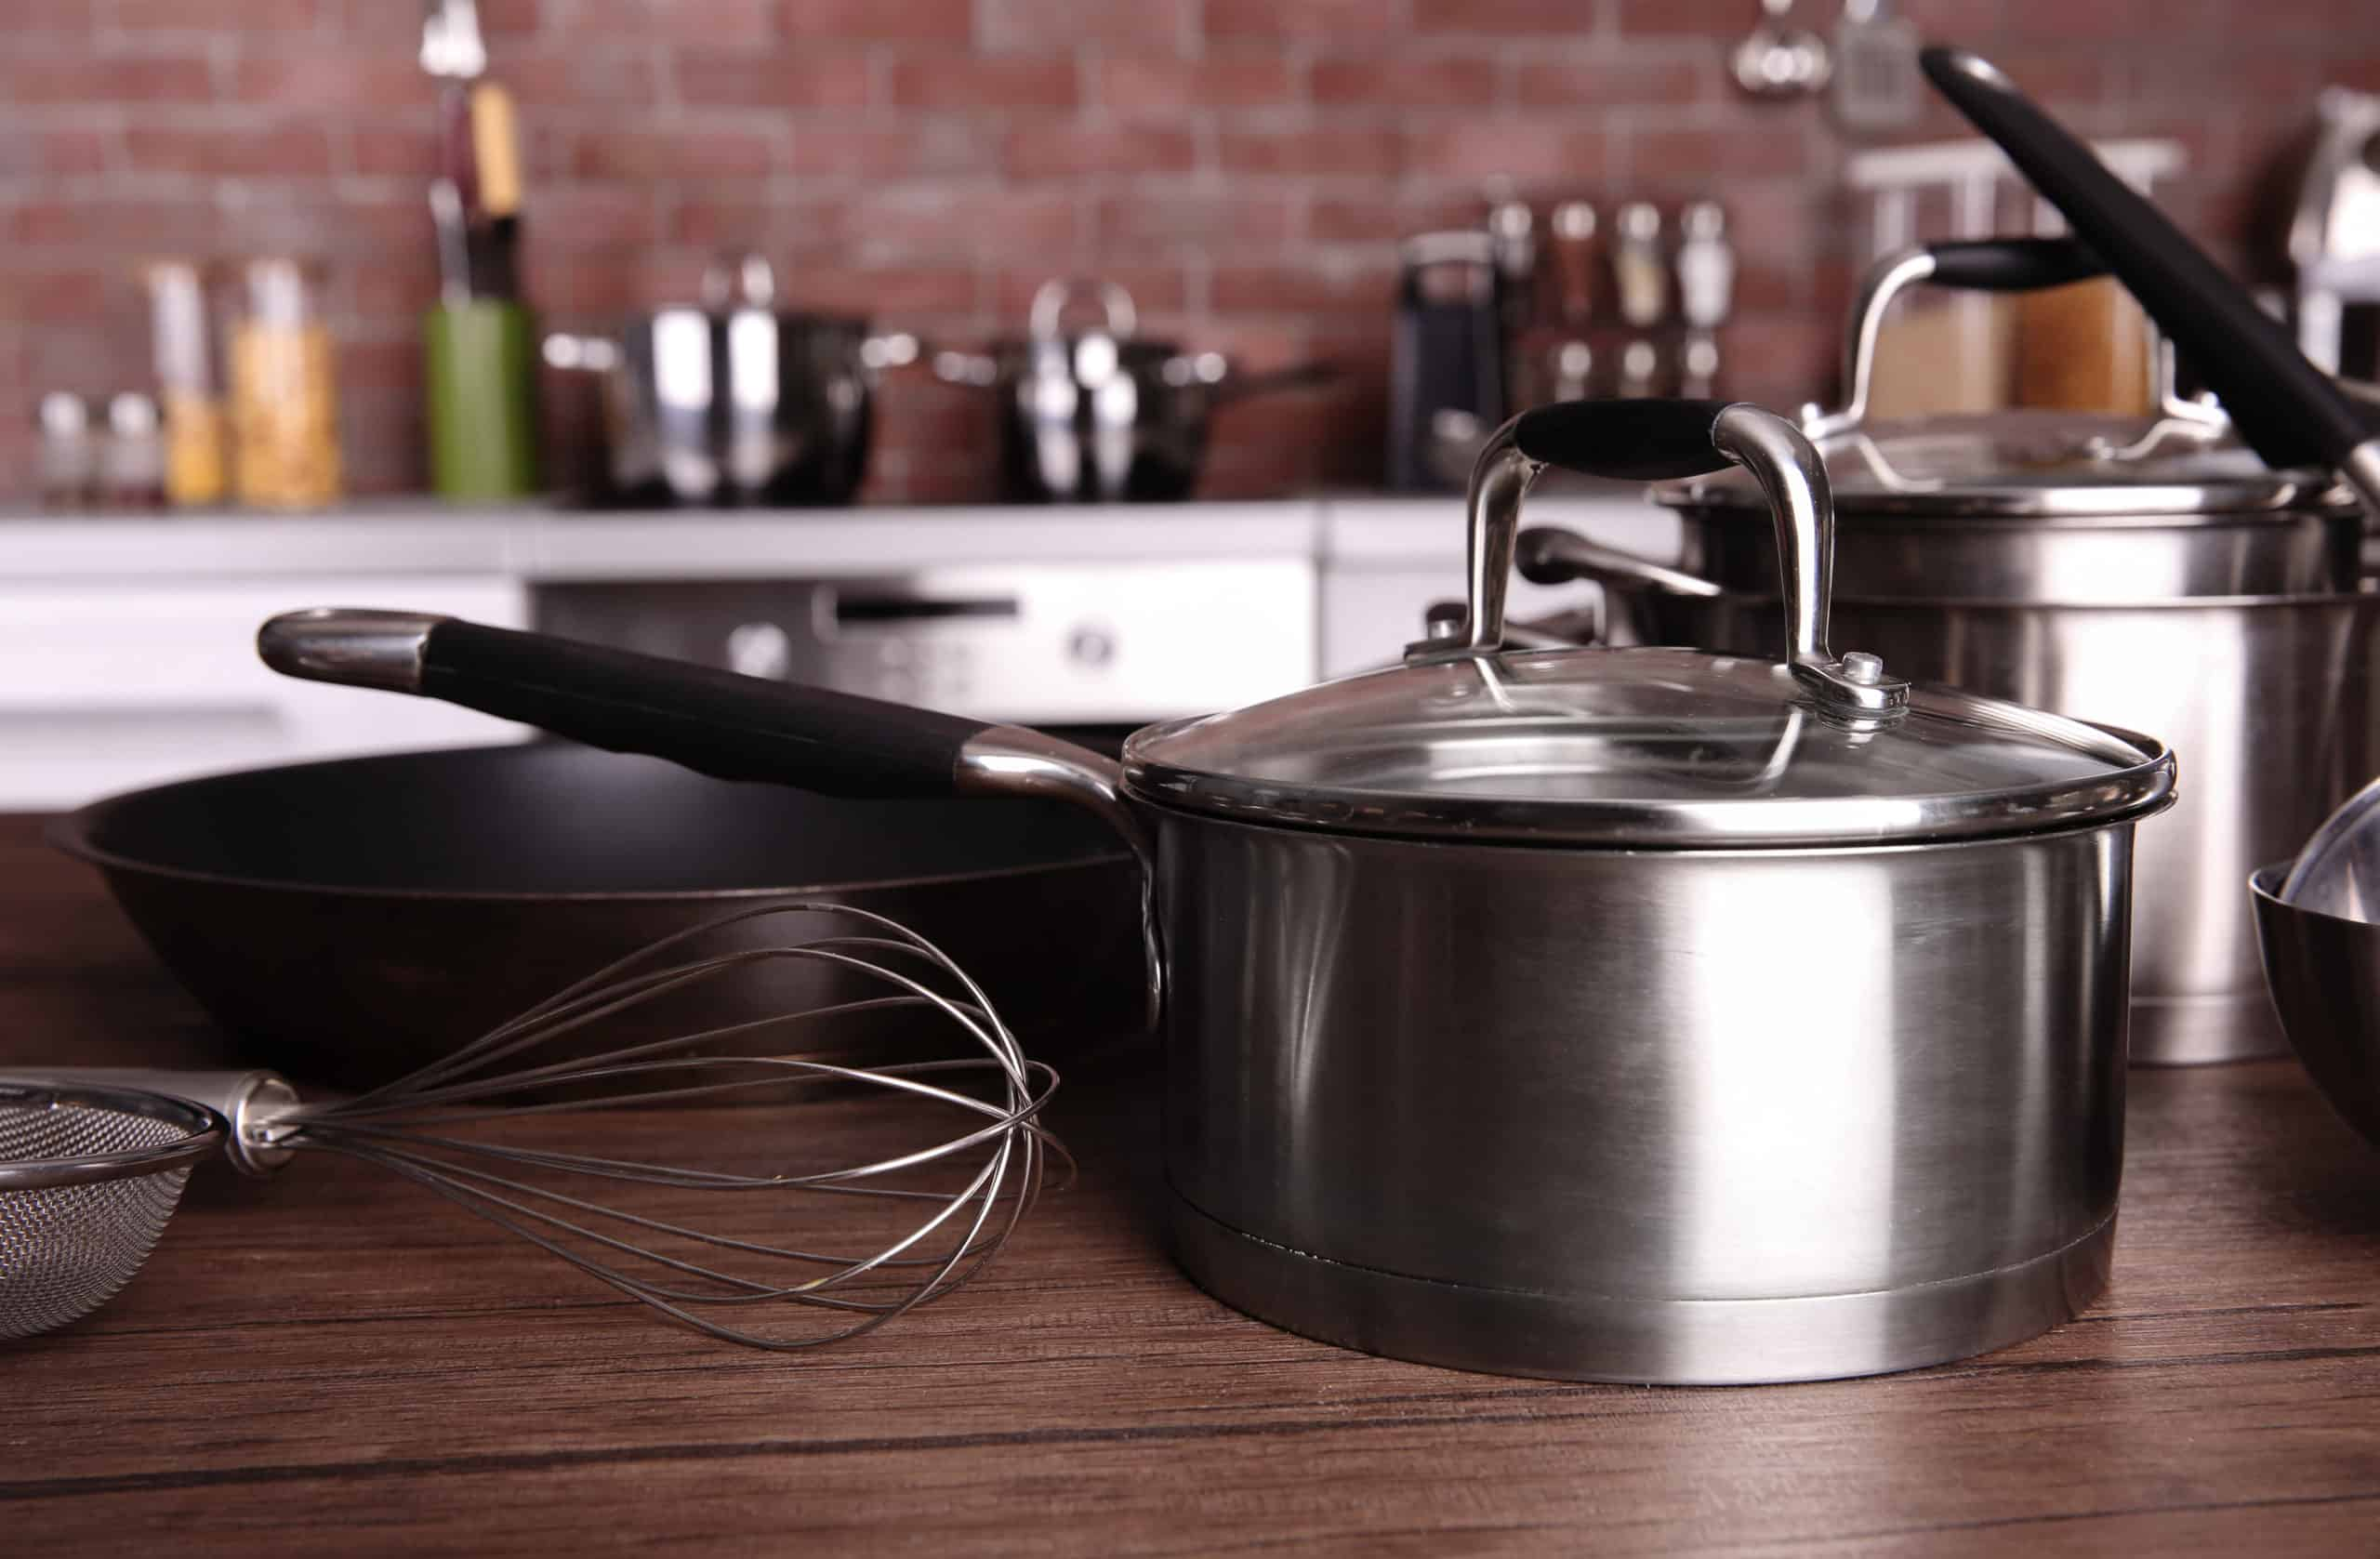 How to Season Stainless Steel Pans